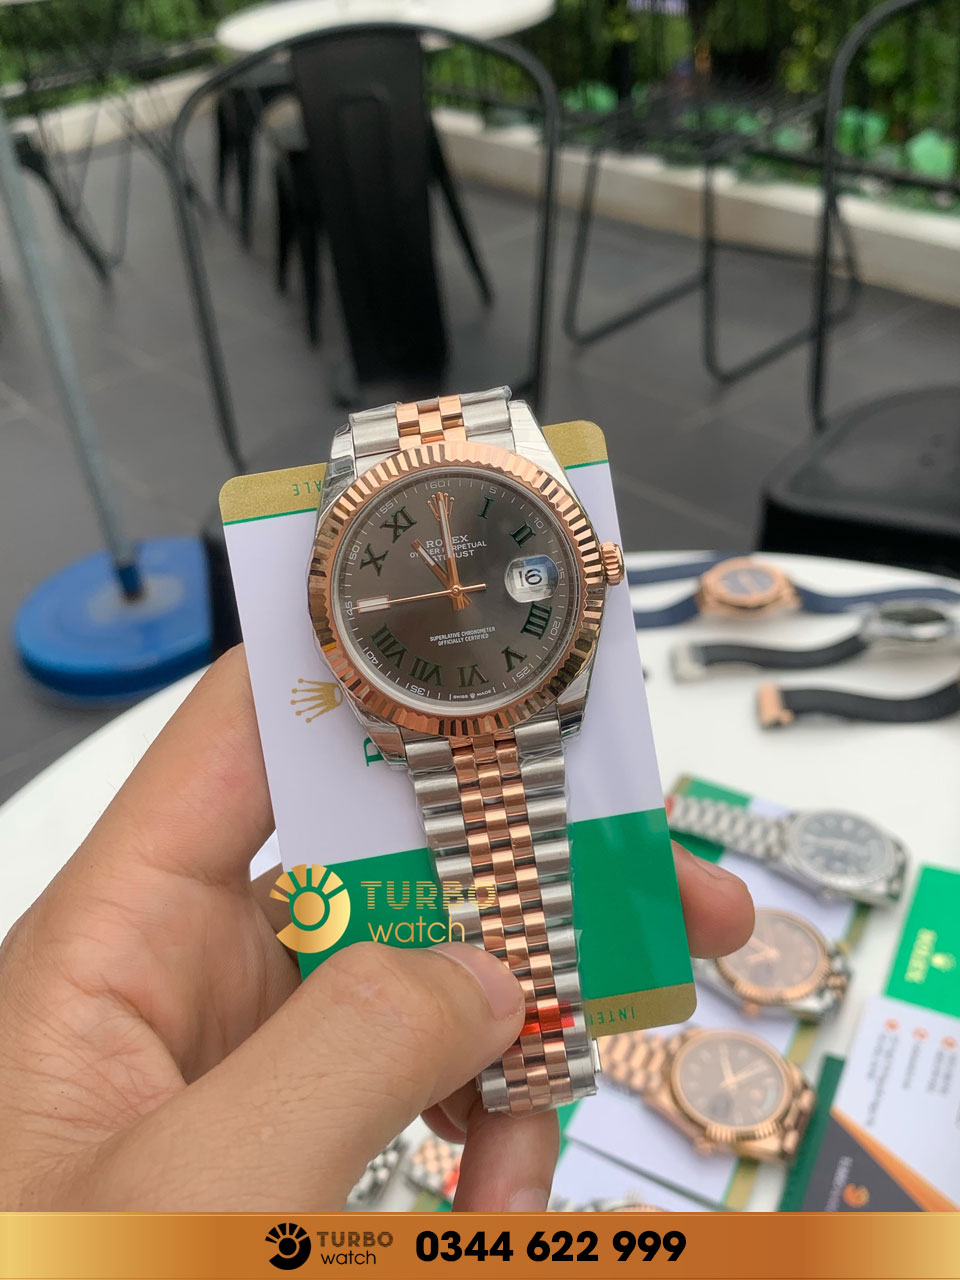 Rolex  Datejust 41 mm 126331 18K Rose Gold/Stainless Steel Oyster fake 1-1 siêu cấp